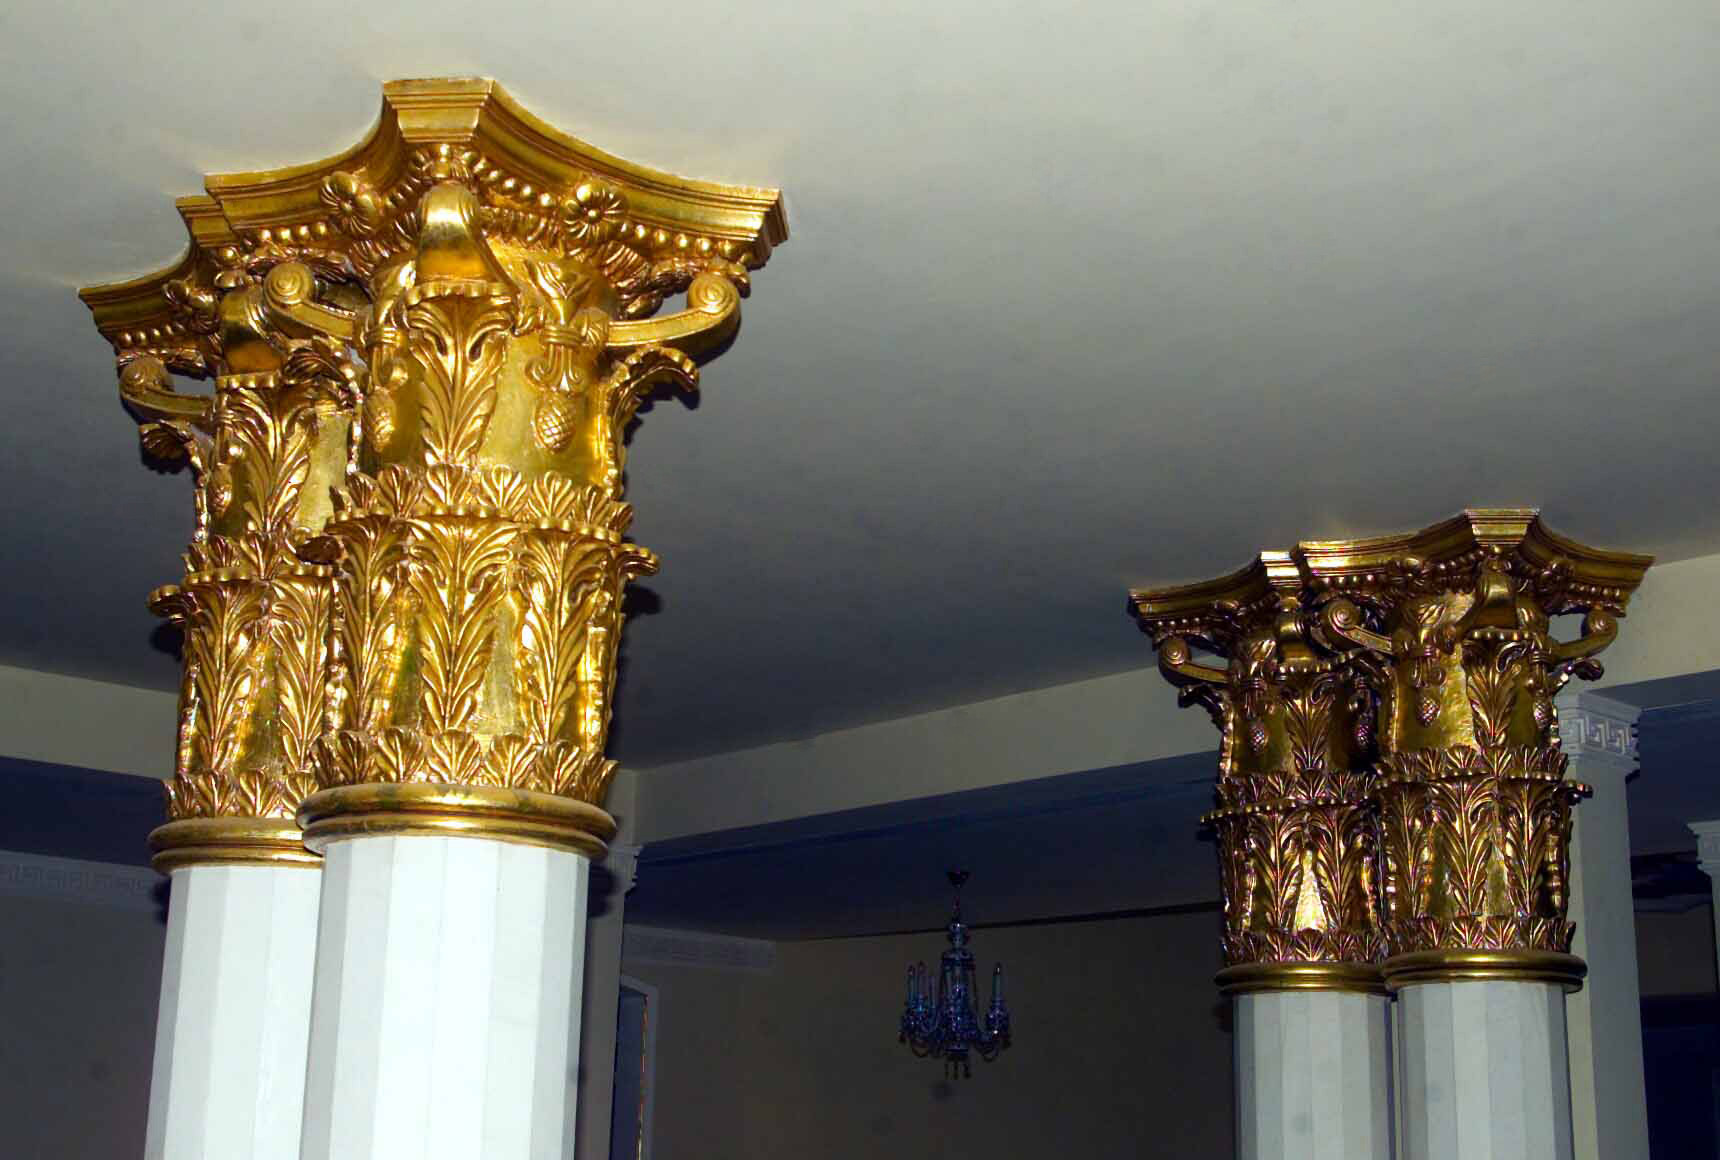 Gold leaf pillars found inside one of Saddam Hussein's Palaces in Baghdad during Operation IRAQI FREEDOM